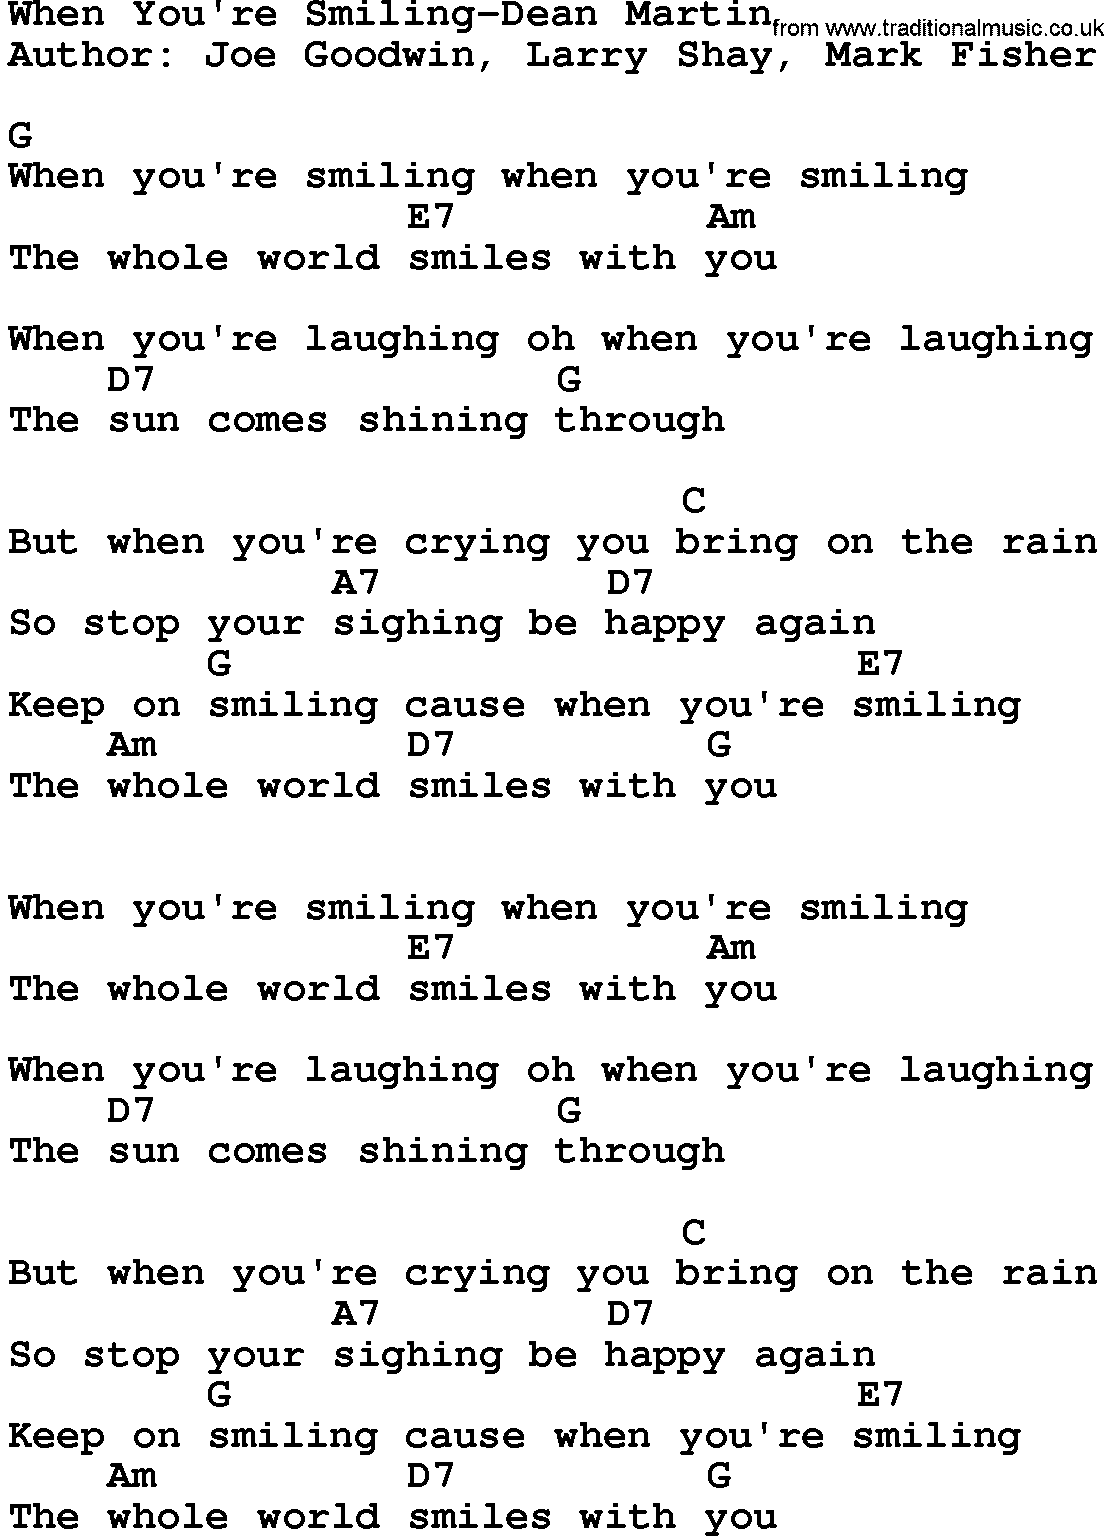 Country musicwhen youre smiling dean martin lyrics and chords hexwebz Images